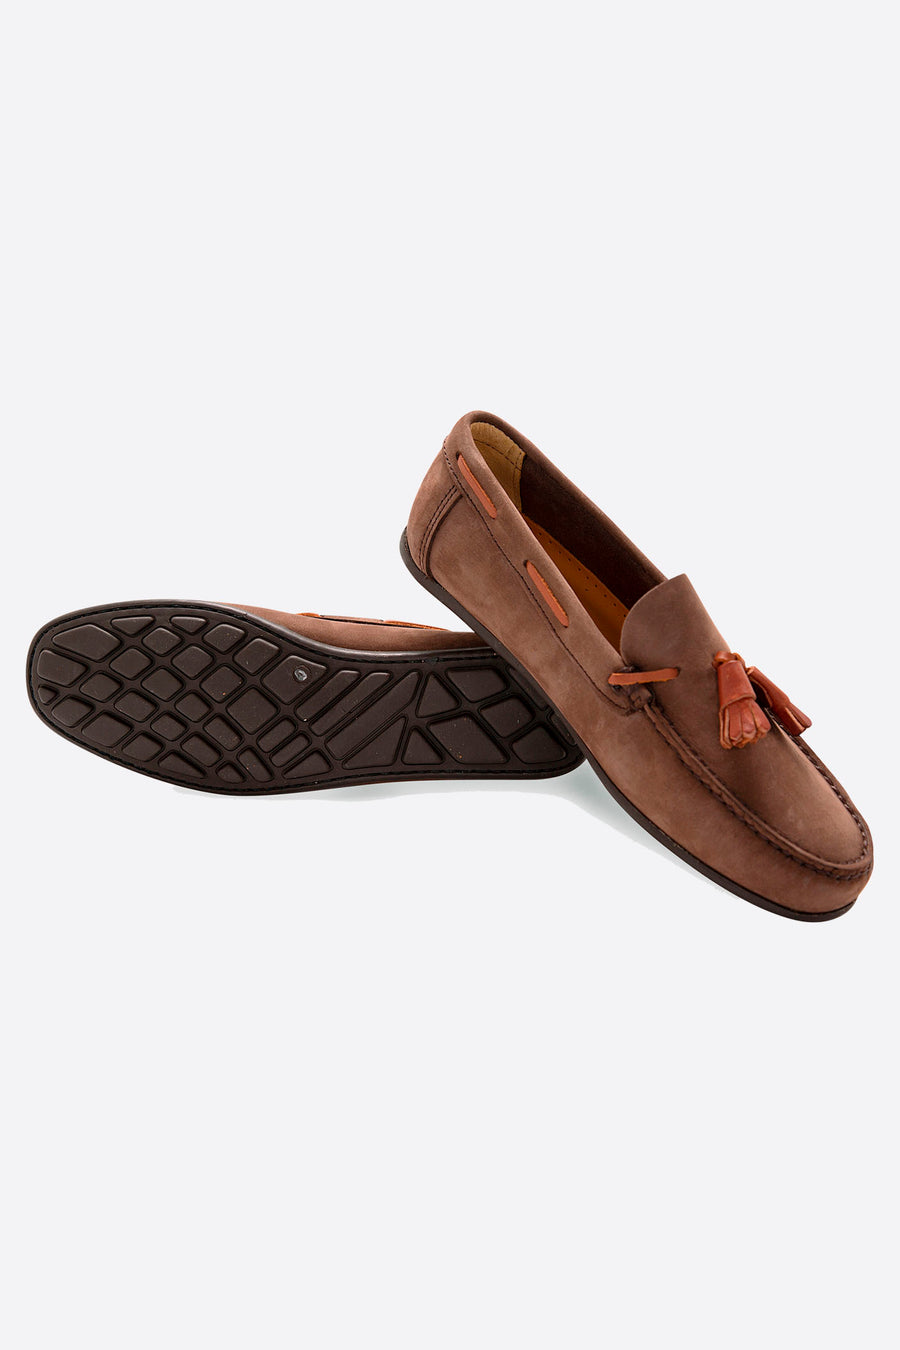 Brown Nubuck Moccasin with Fringes and Flexible Sole